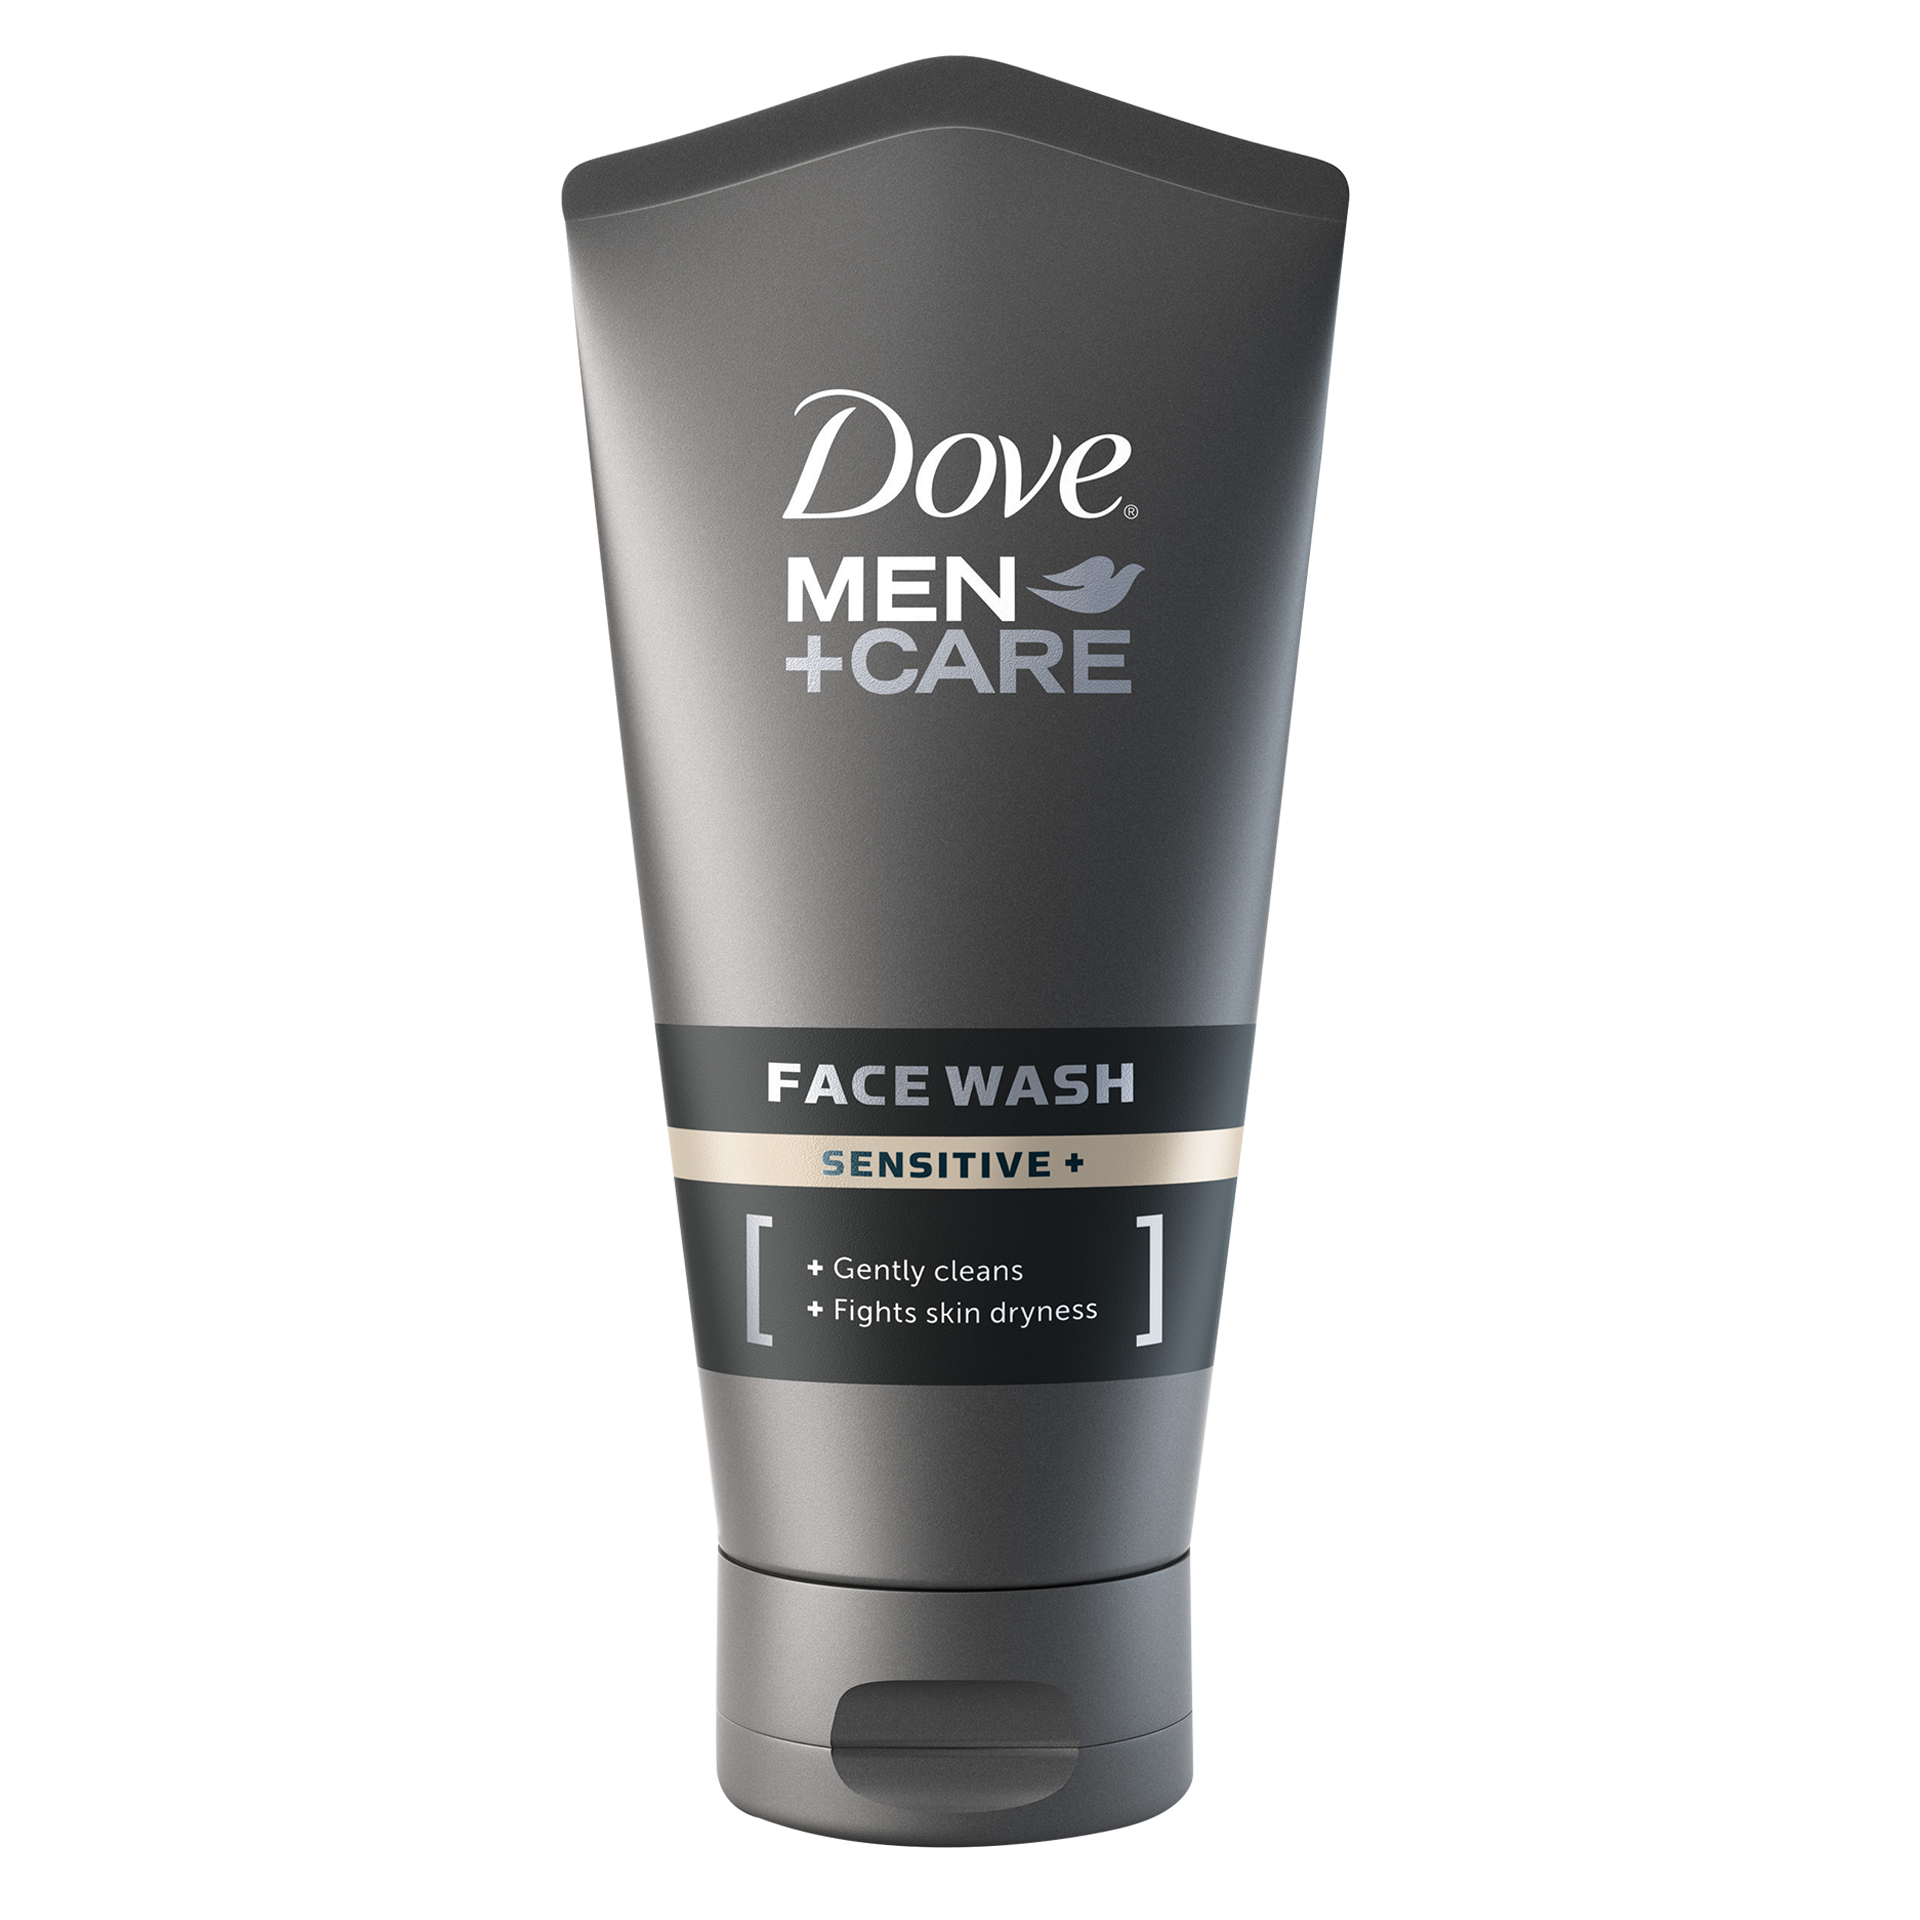 Dove Men Care Sensitive Face Wash